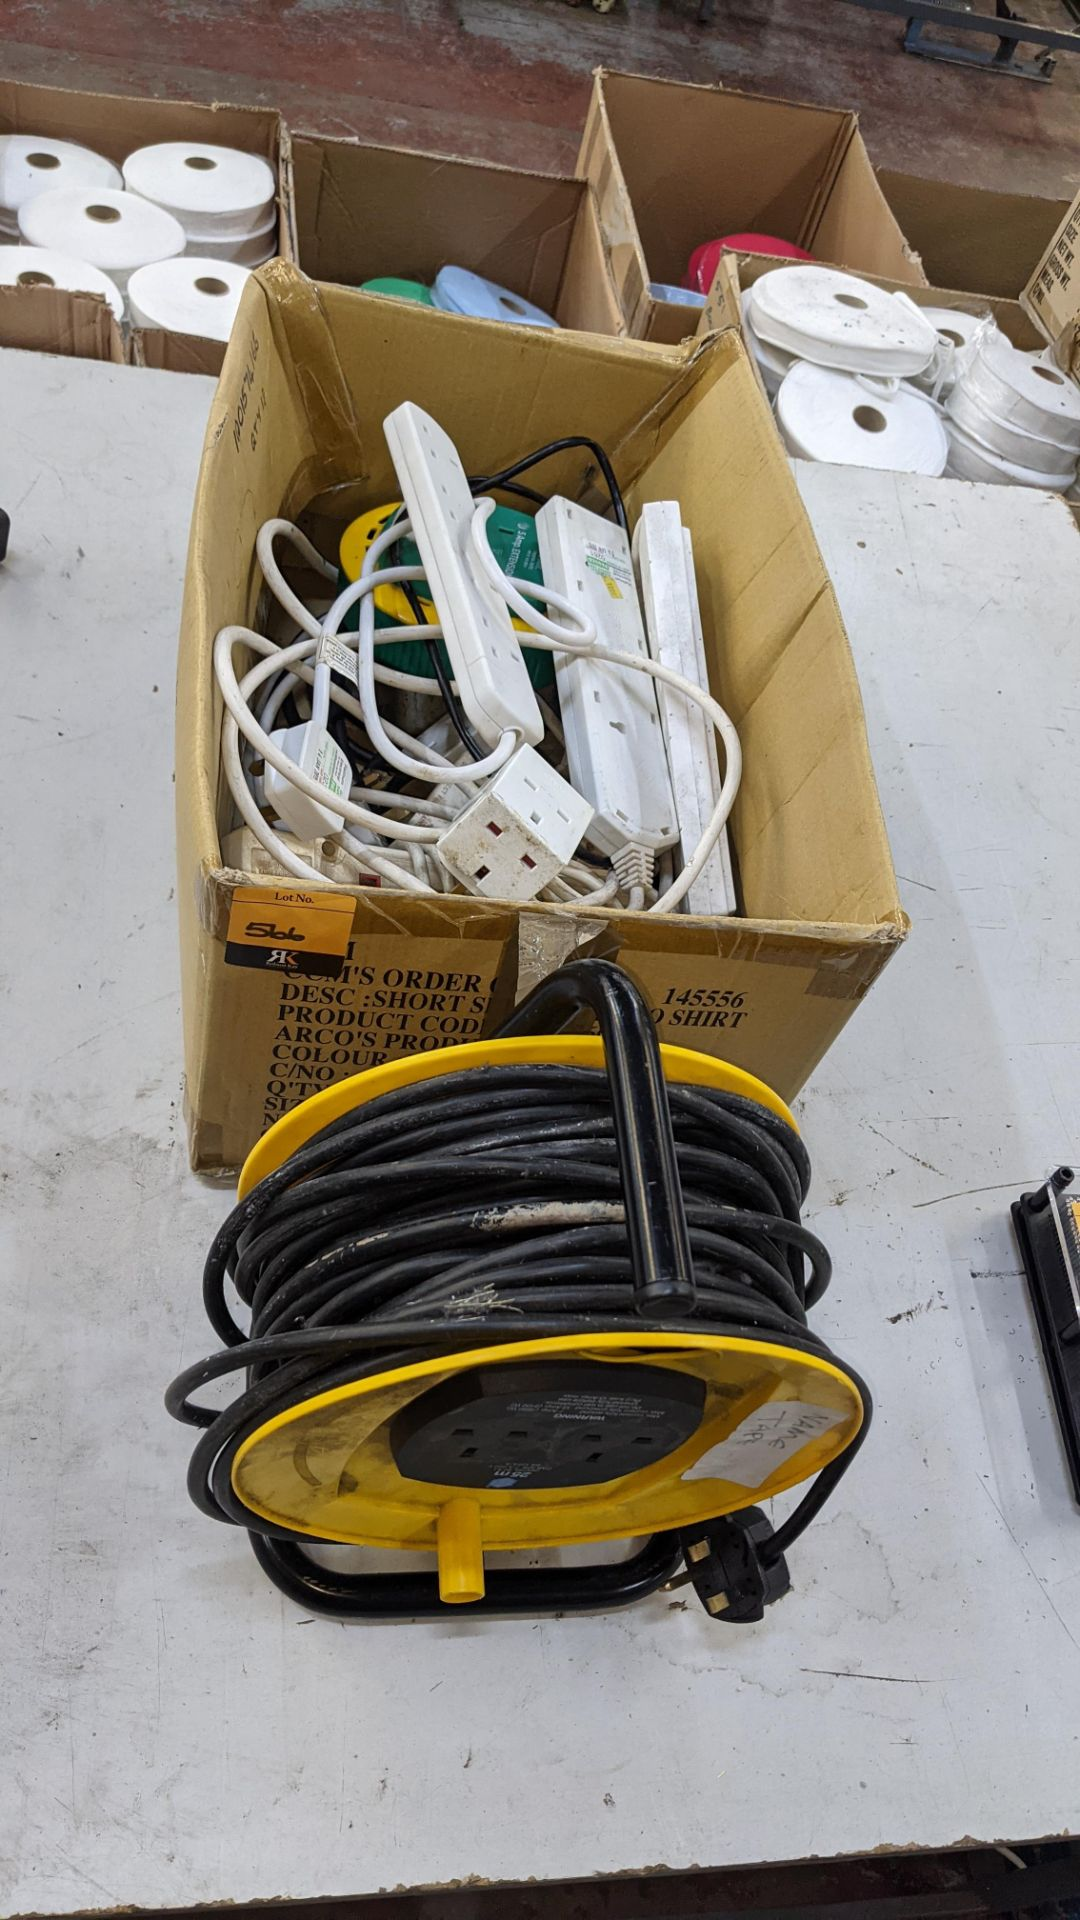 Box of electrical extension cables plus reel of extension cable as pictured in front of the box - Image 2 of 4